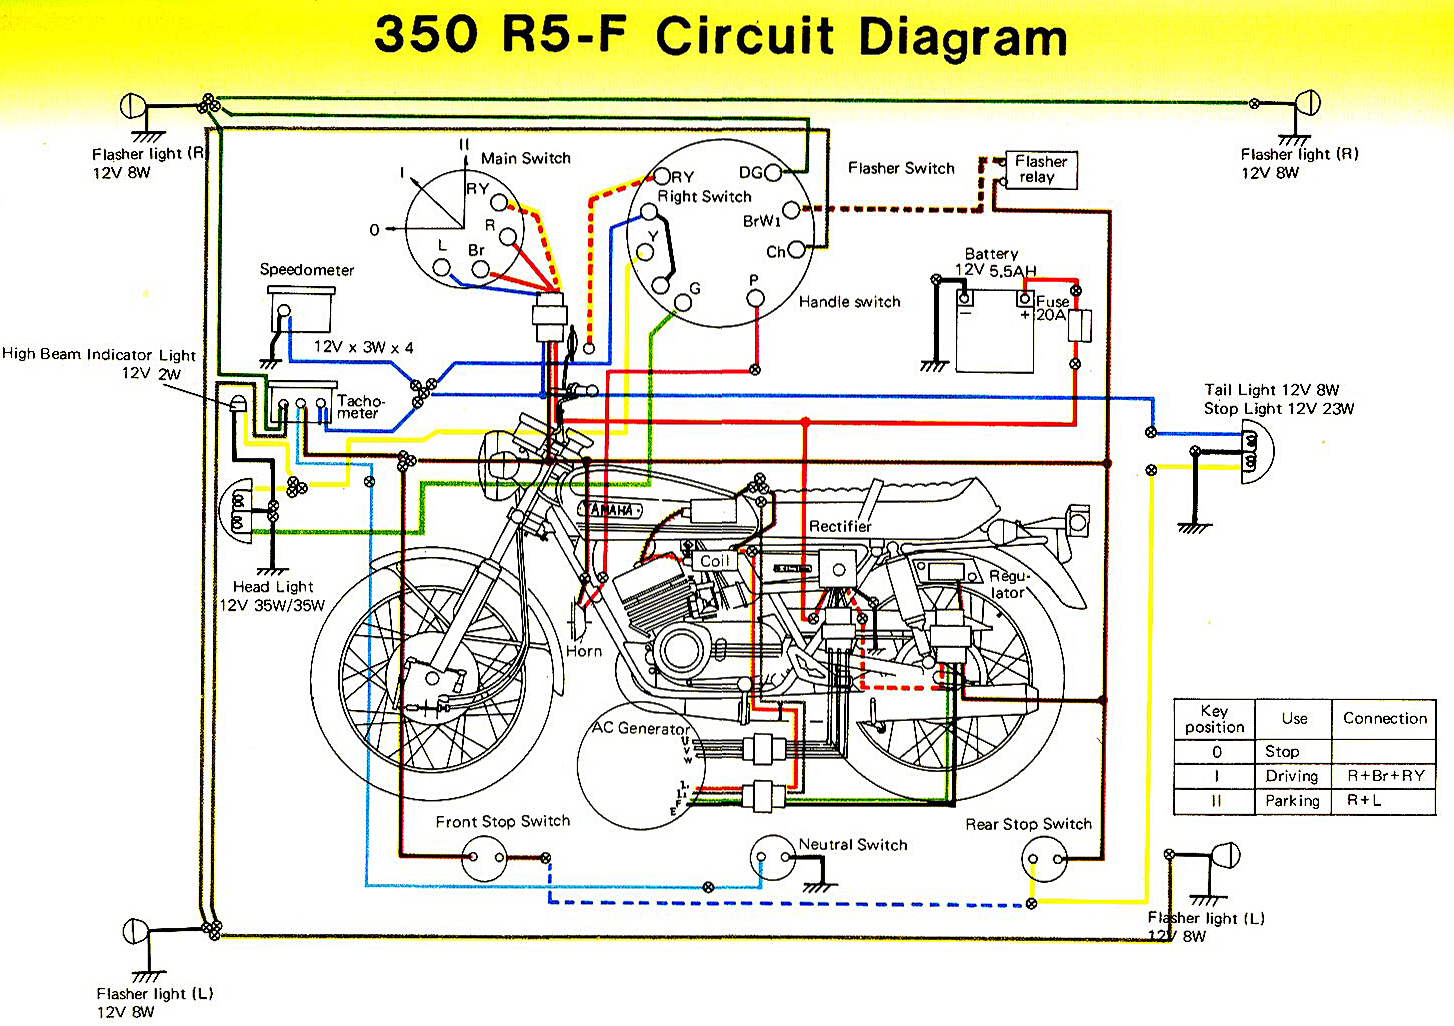 R5F Wiring Diagram ...